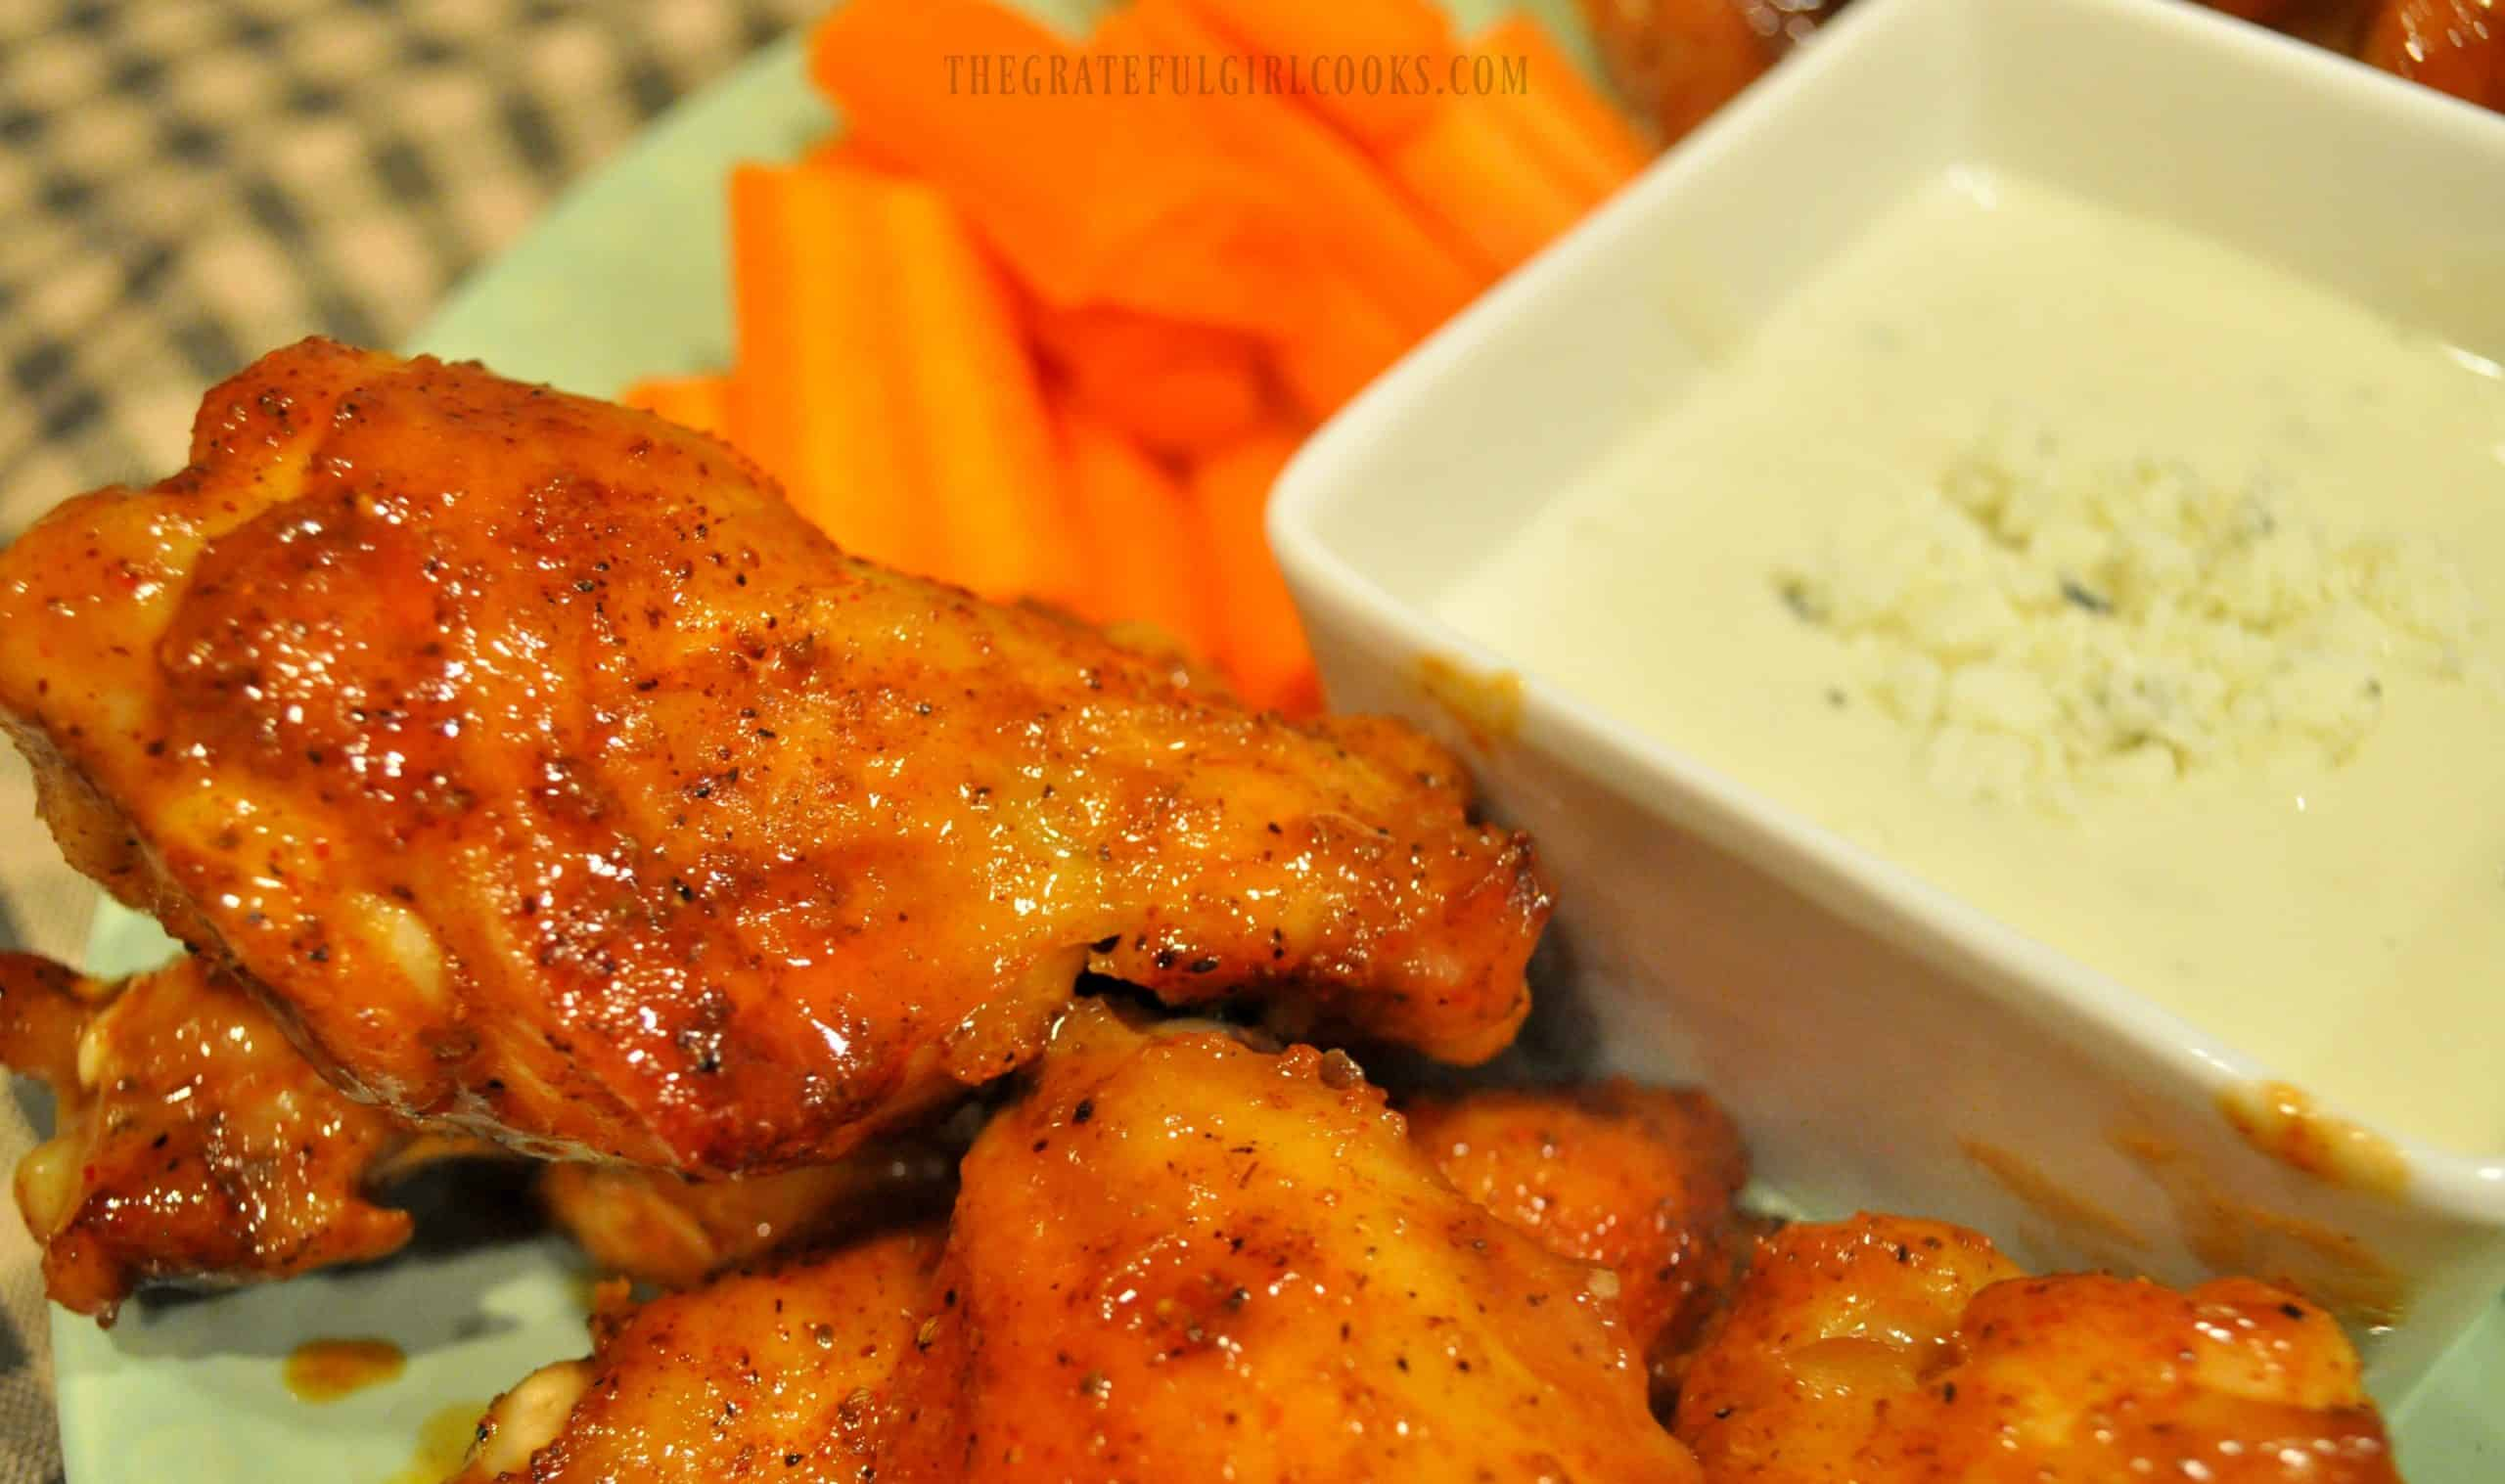 Carrots and dip are served with the cooked buffalo honey chicken wings.